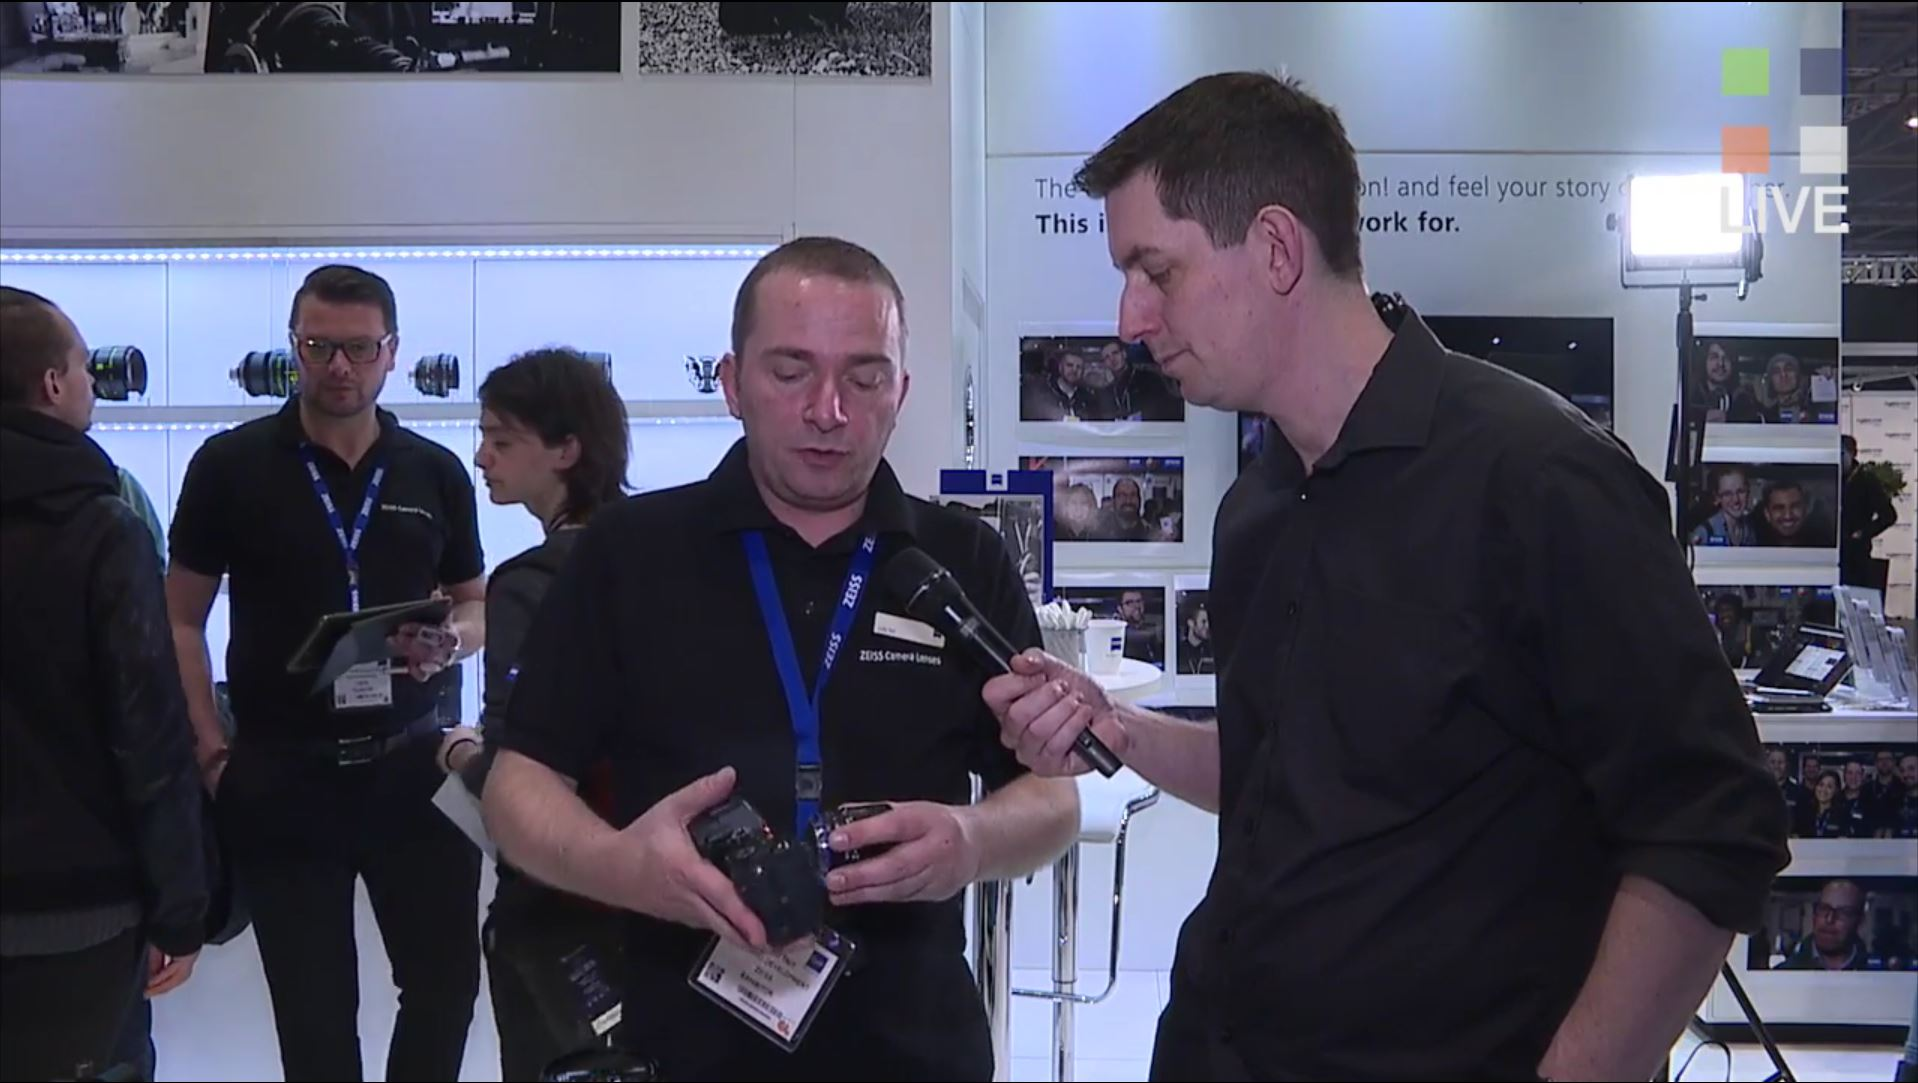 Zeiss at BVE 2016